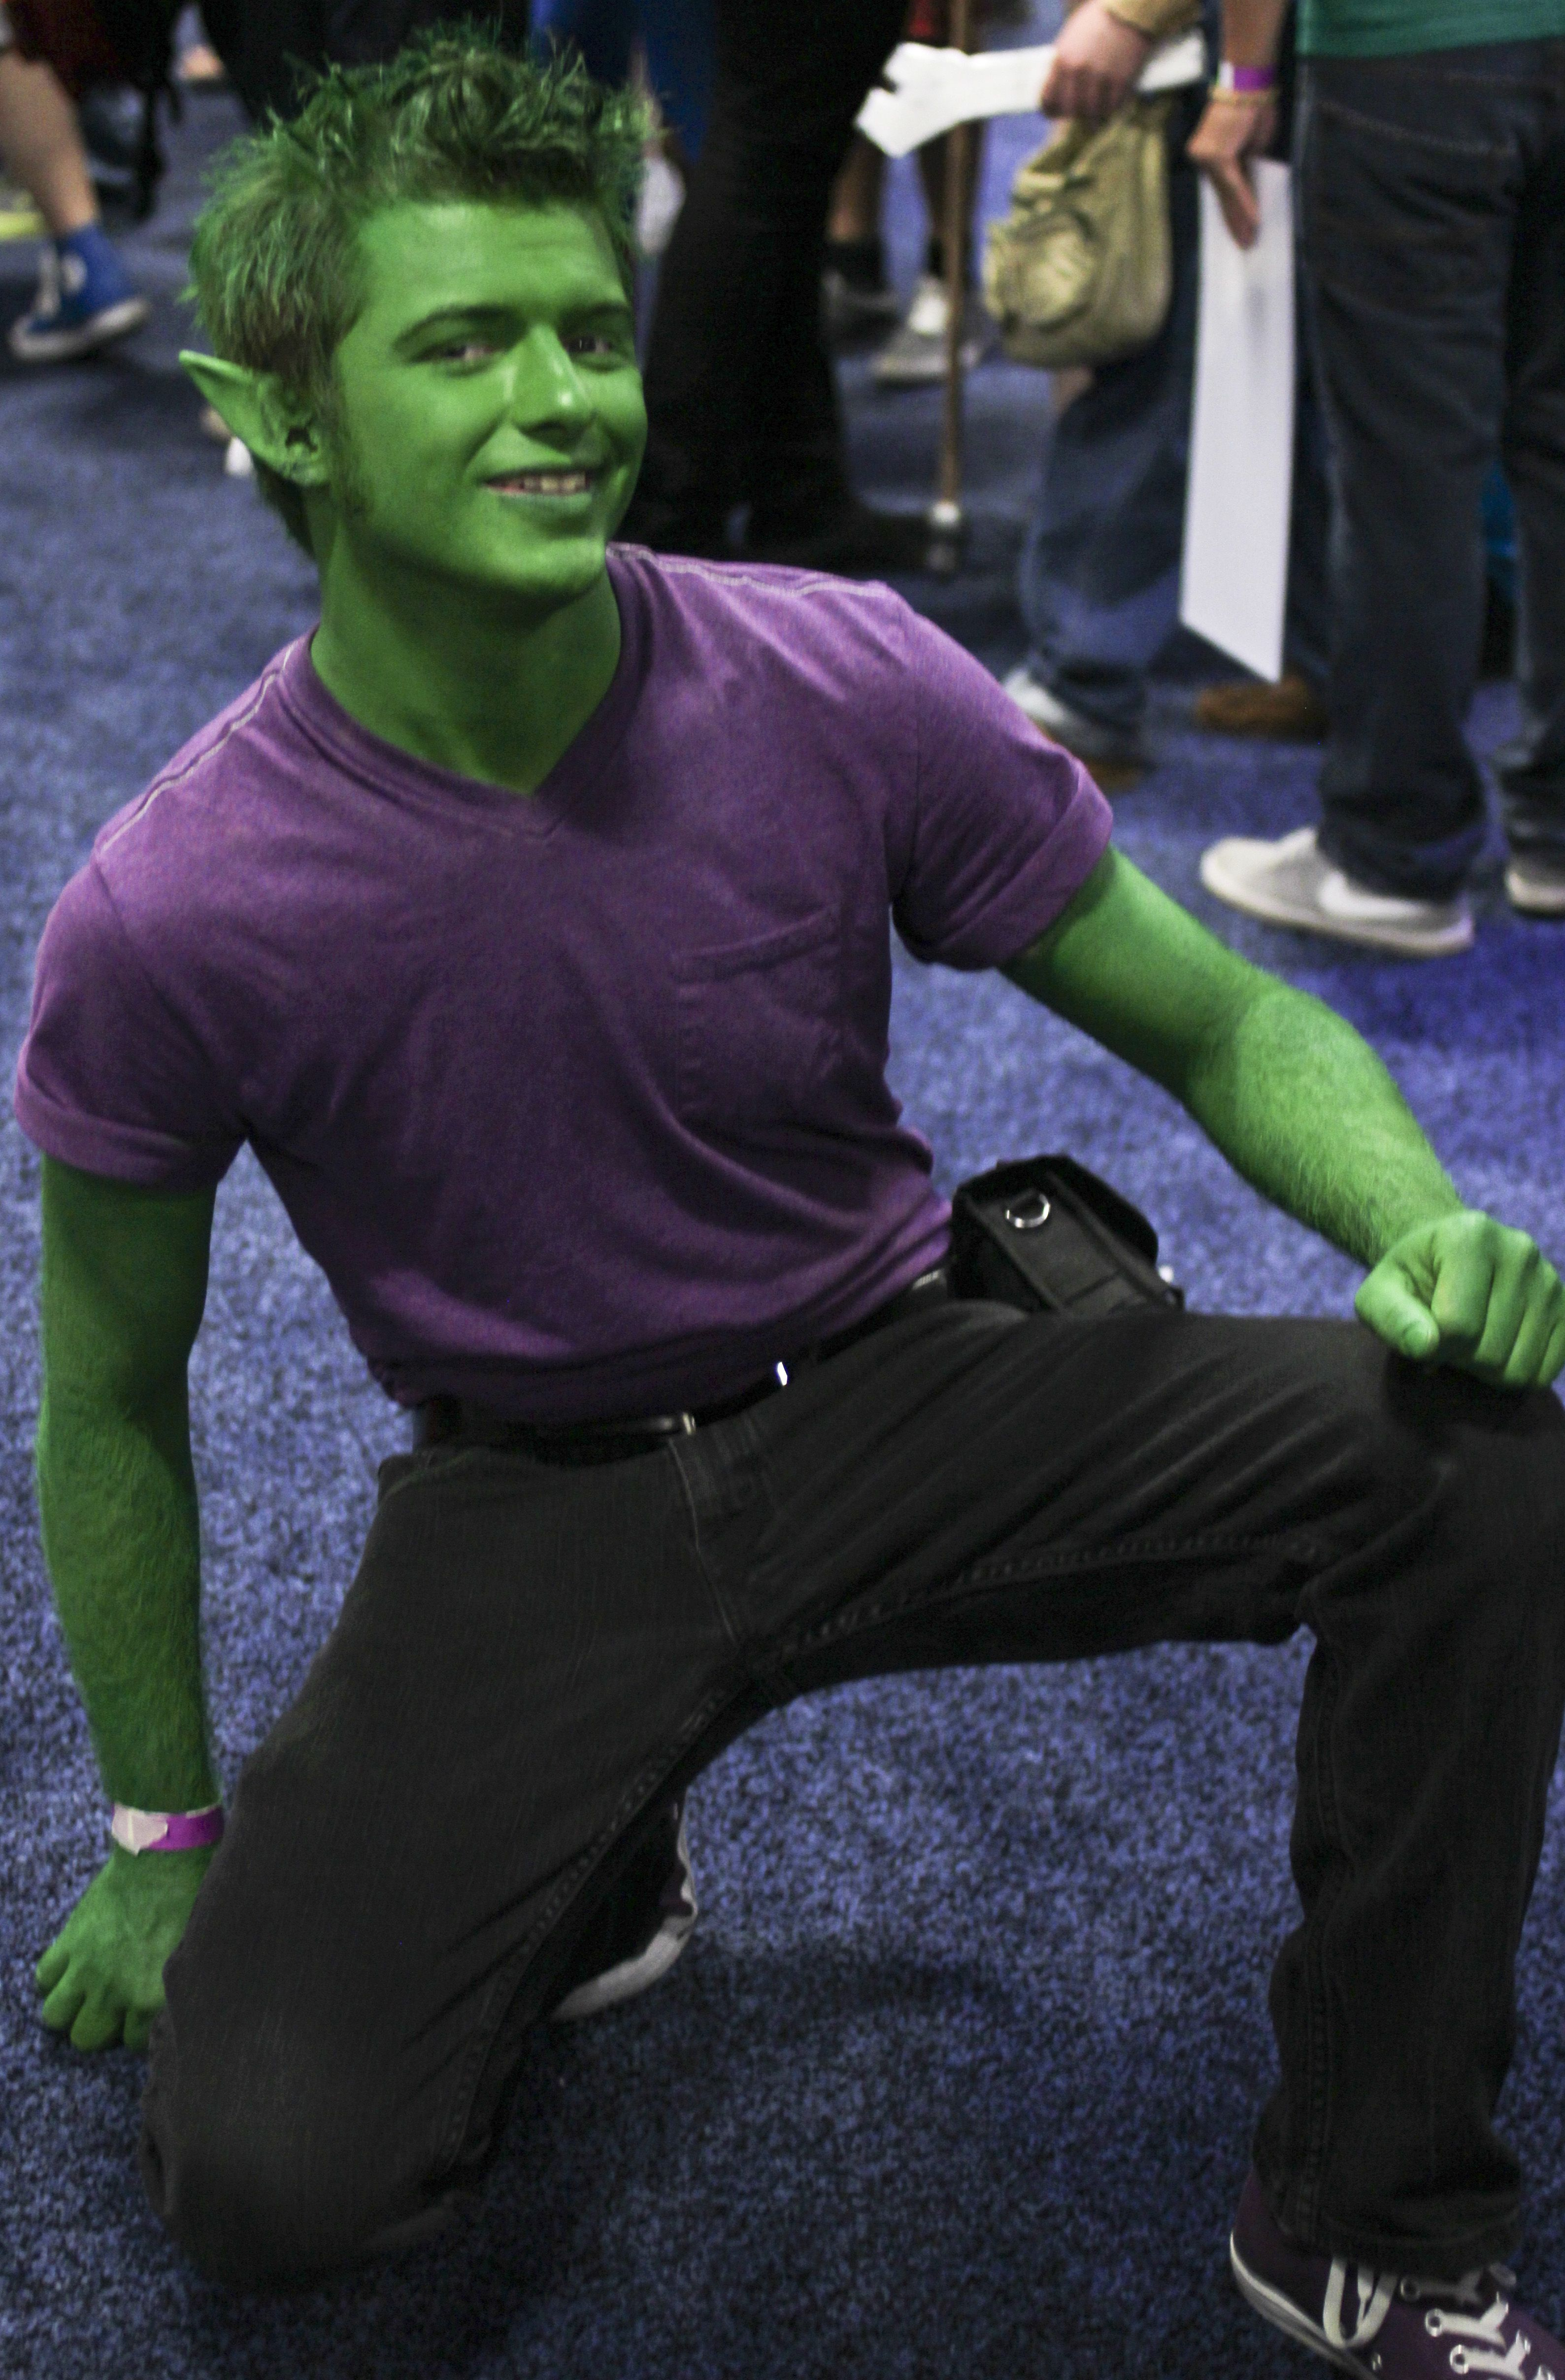 very simple, but all in all, it's a great beast boy cosplay! i don't